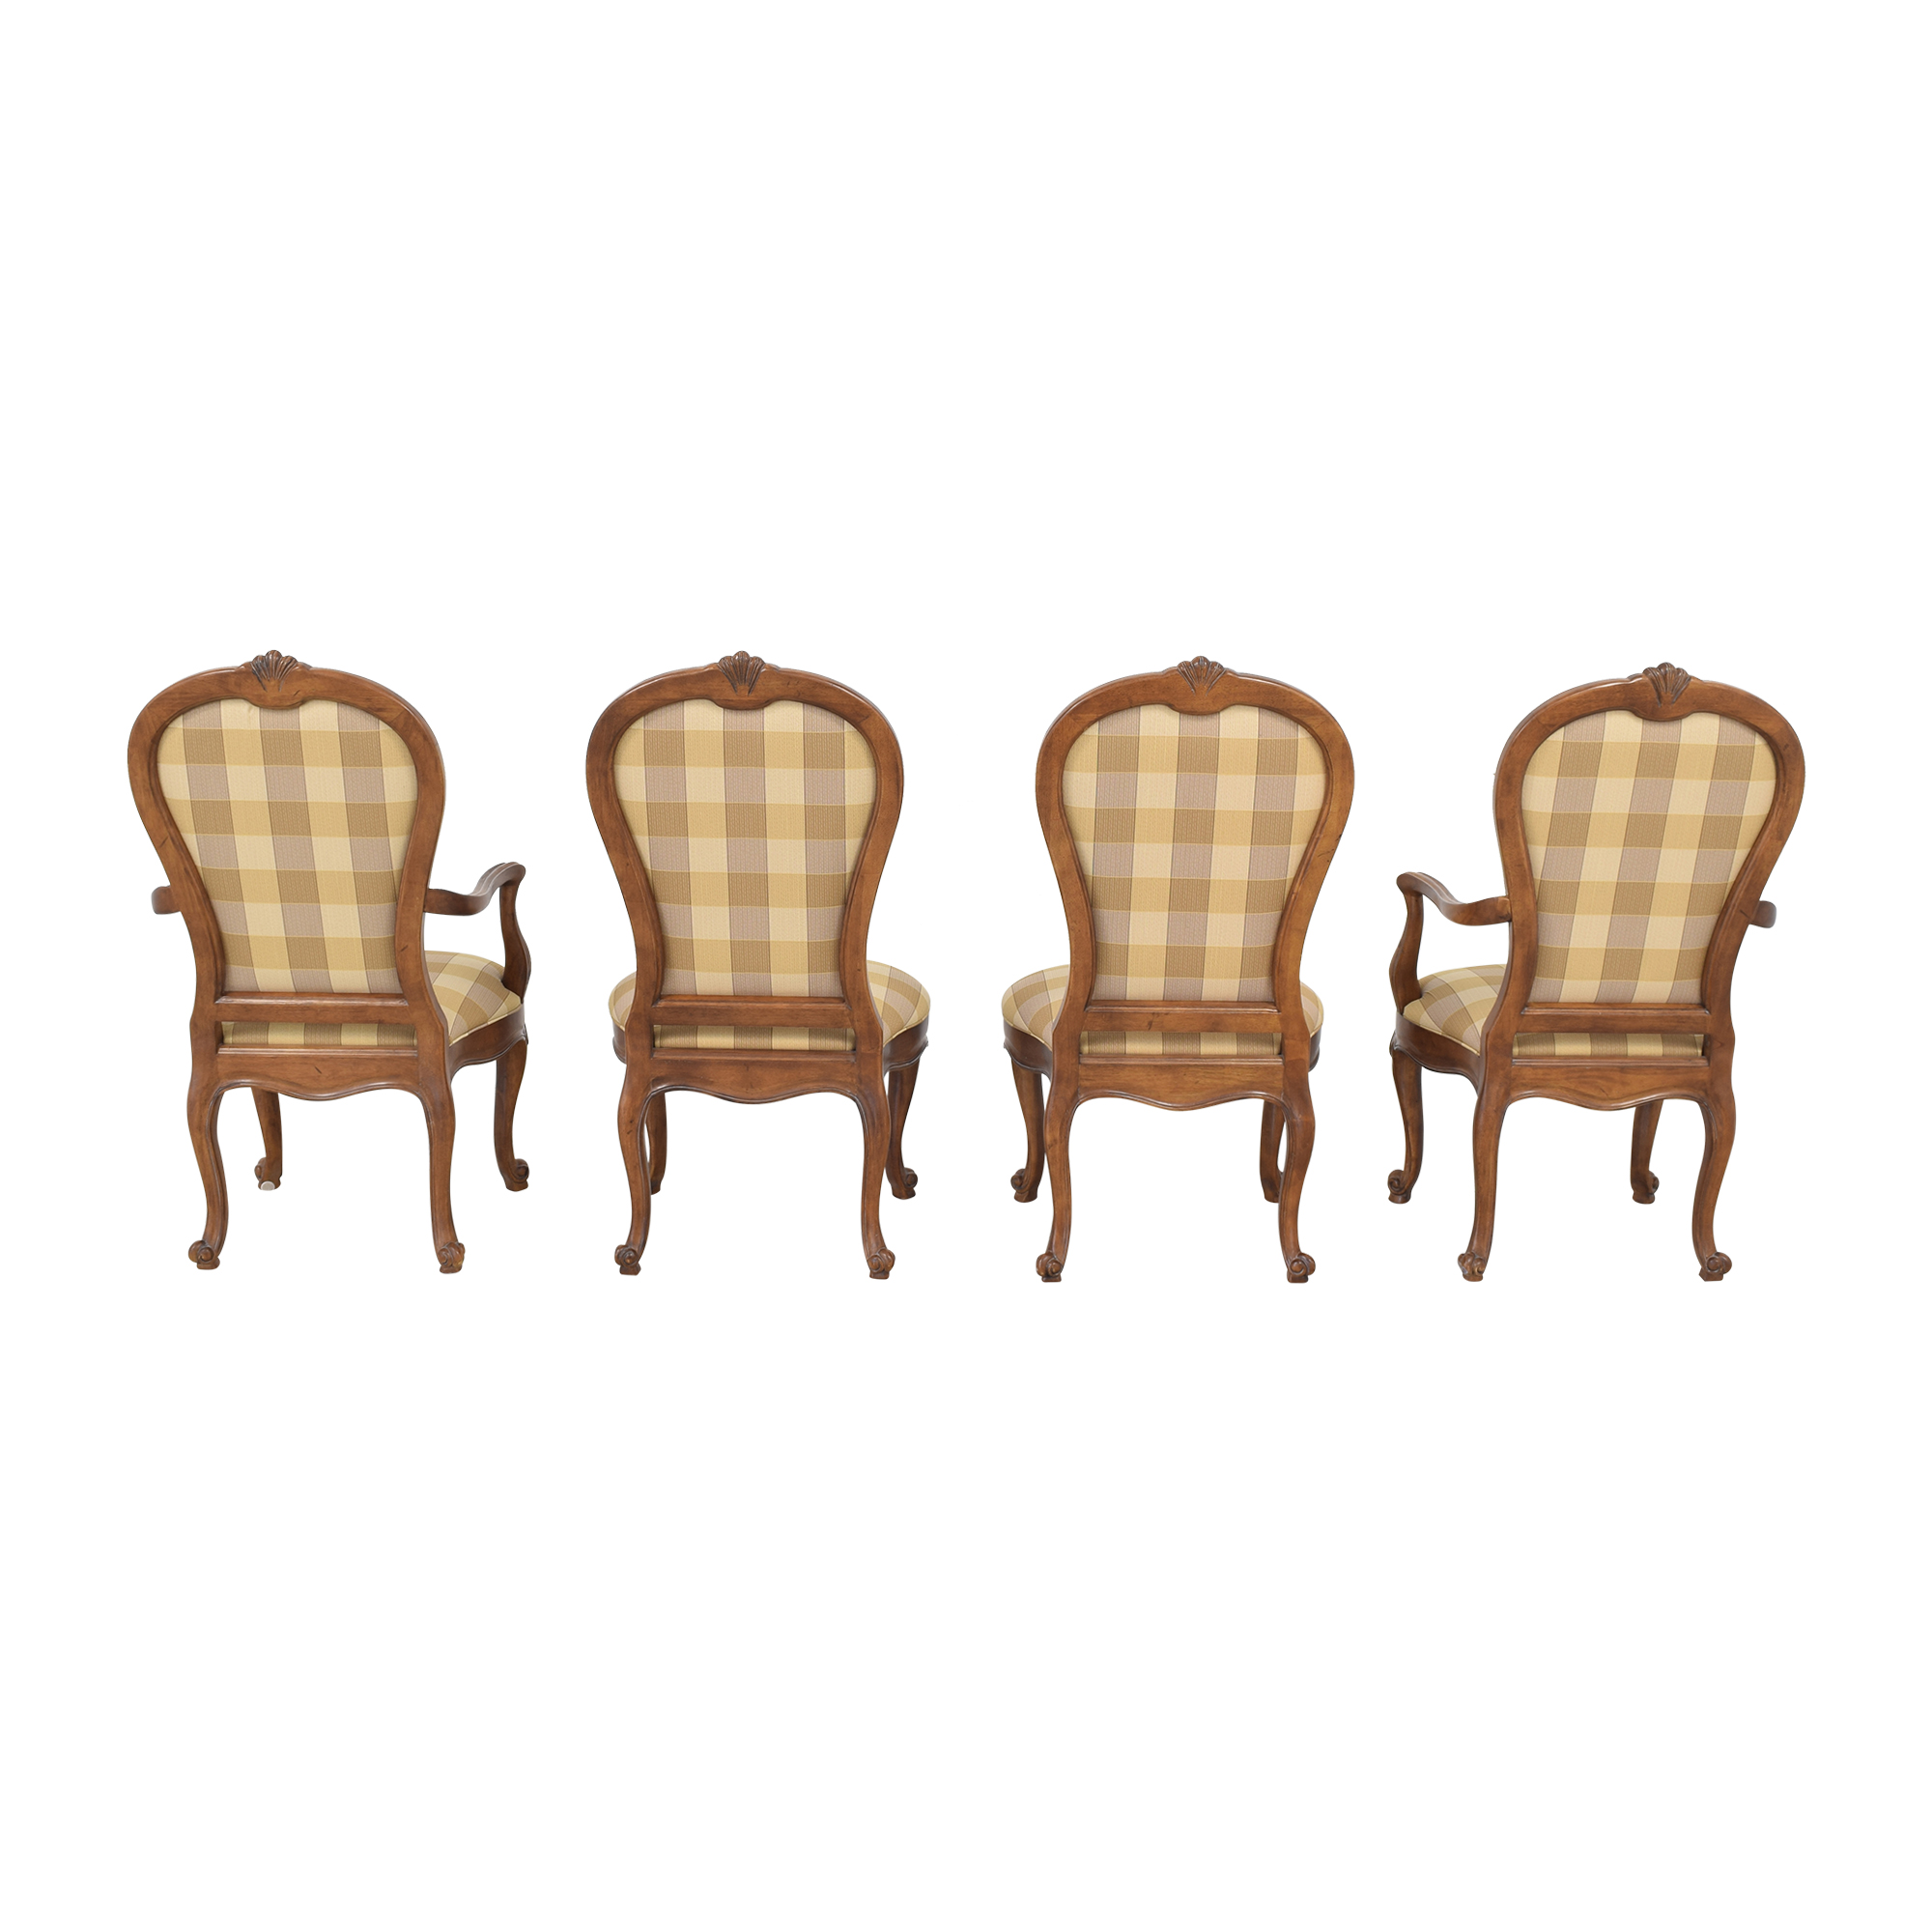 Century Furniture Century Furniture Dining Chairs on sale